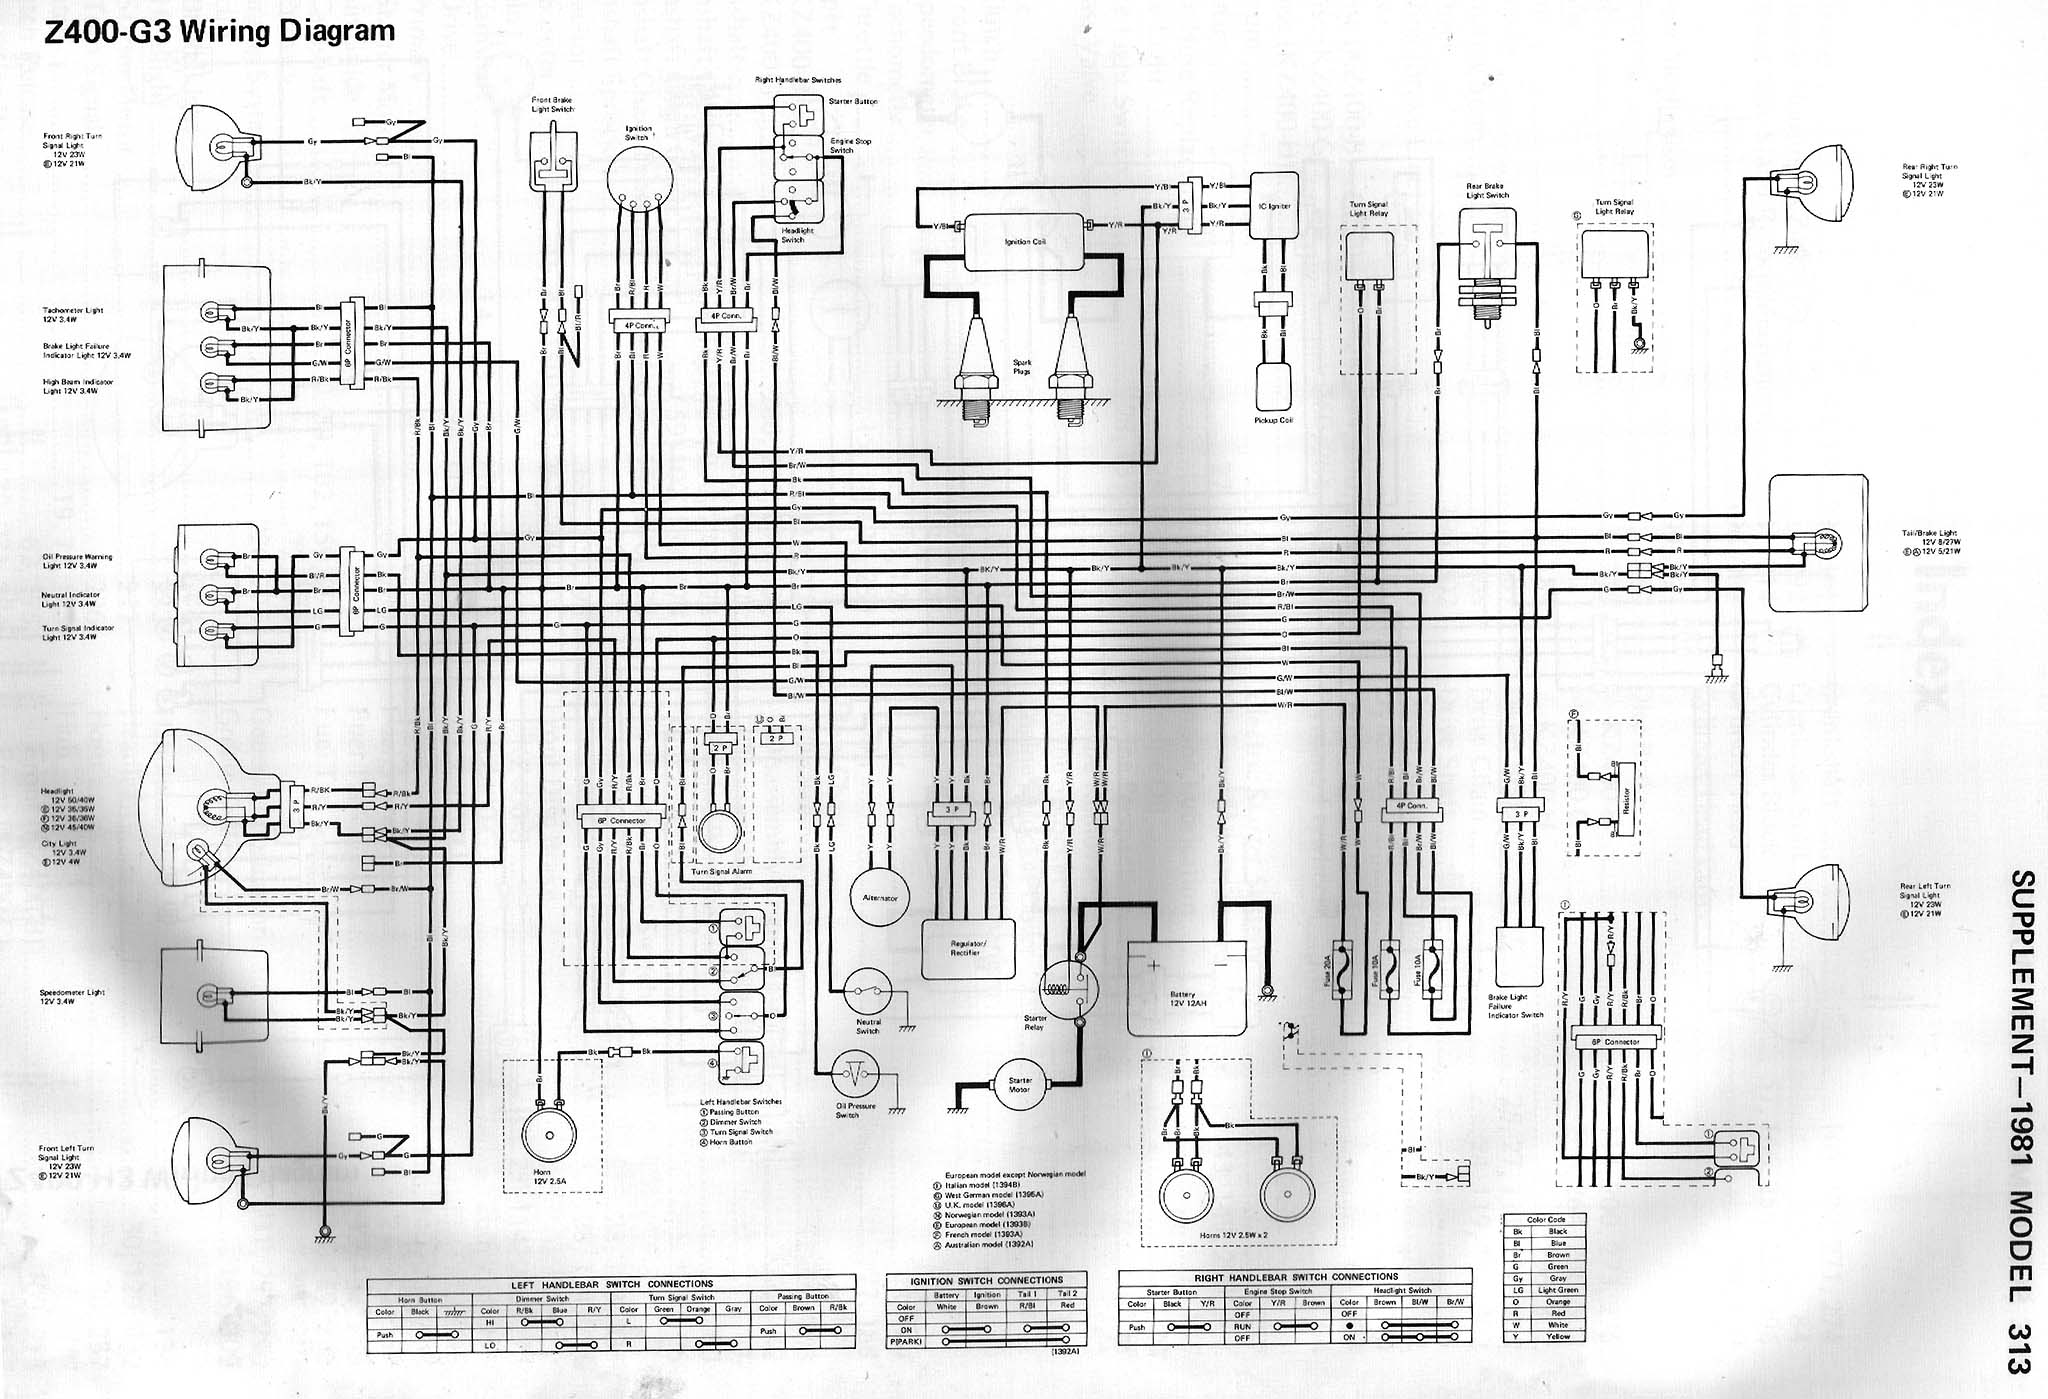 Index of /Techh tips bilder/Wiring diagrams on